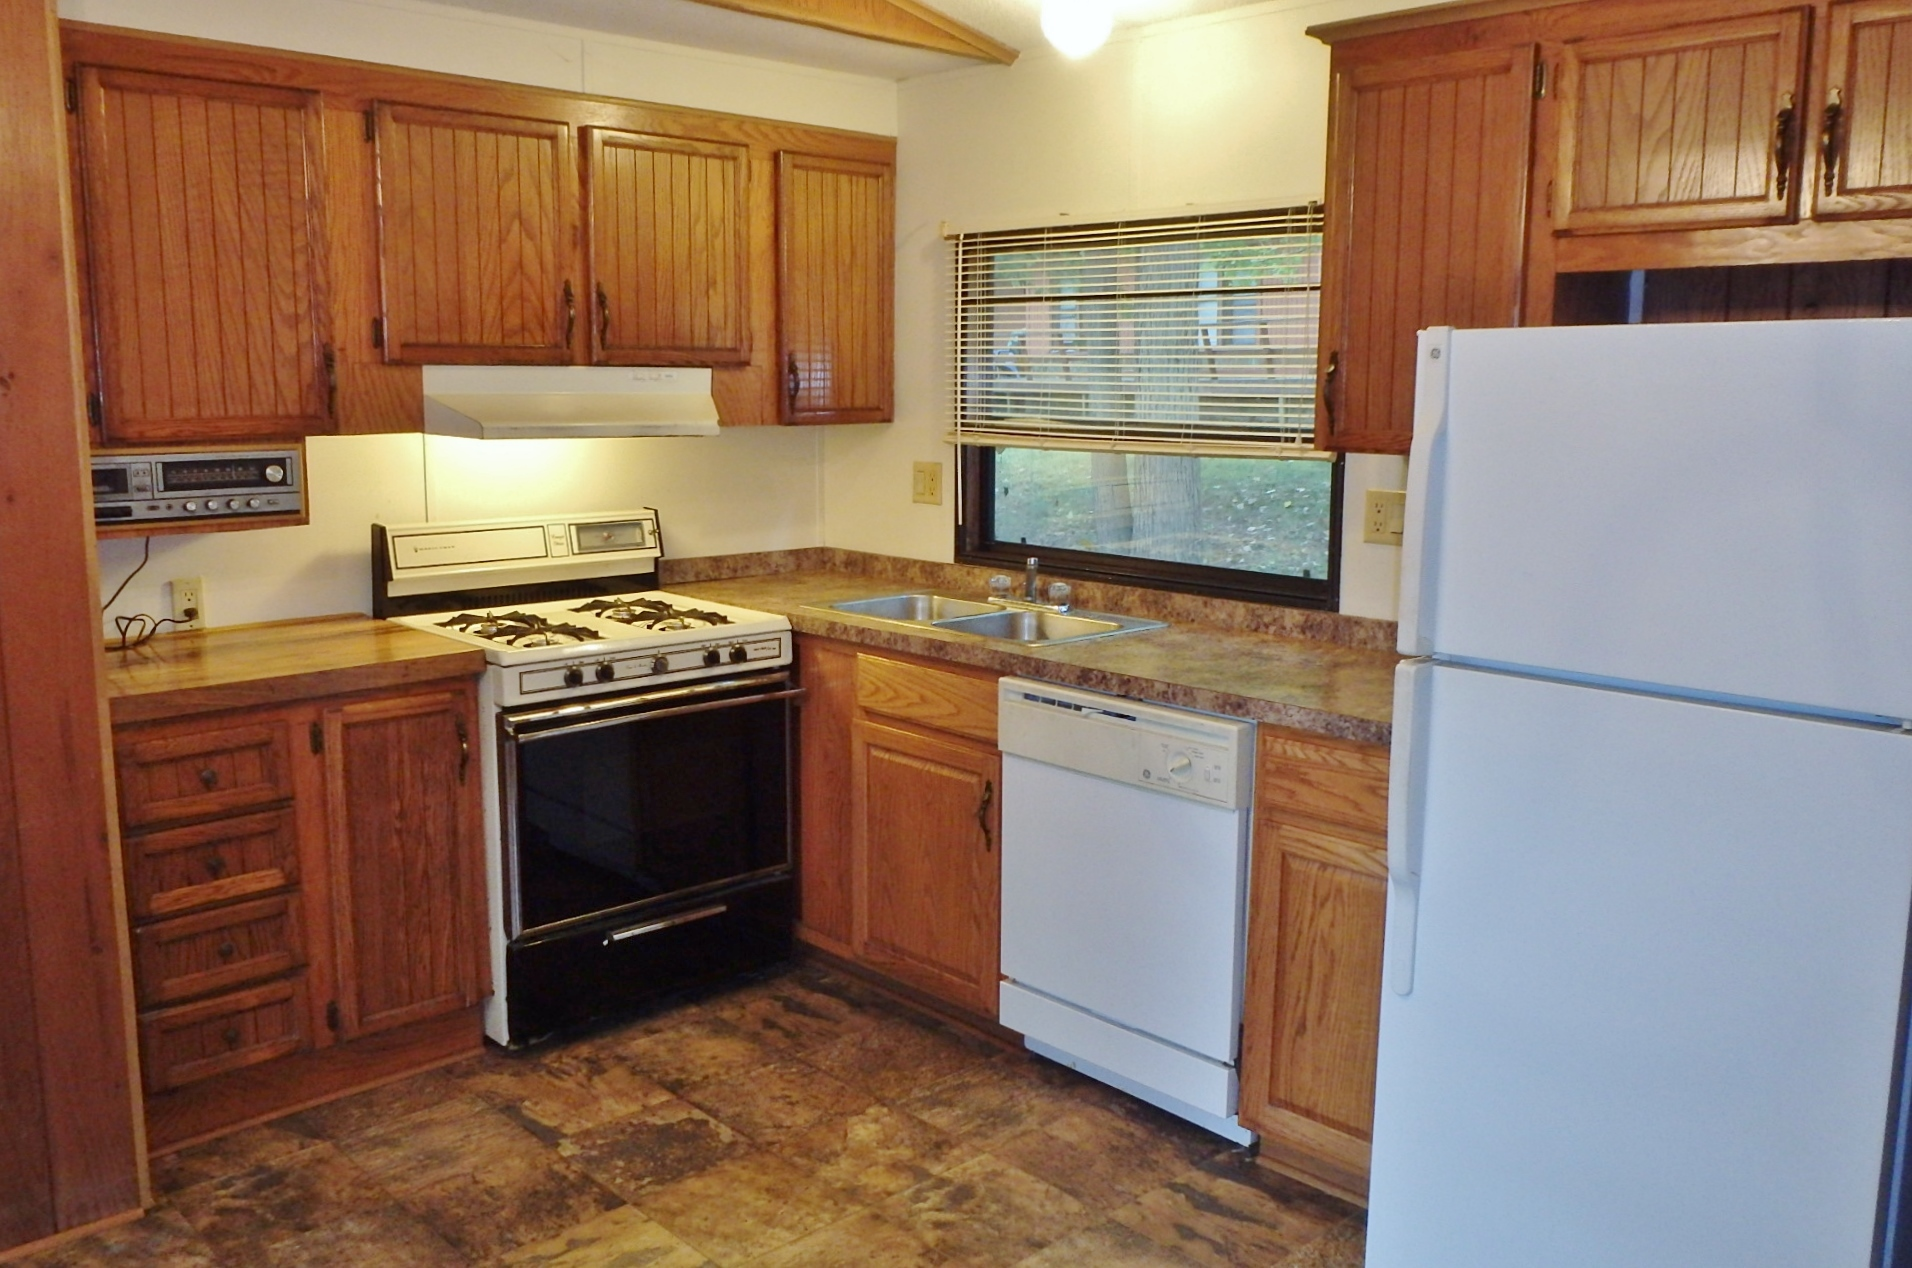 Kitchen photo of the 2-bedroom house for rent at 107 Driftwood Drive in State College PA.